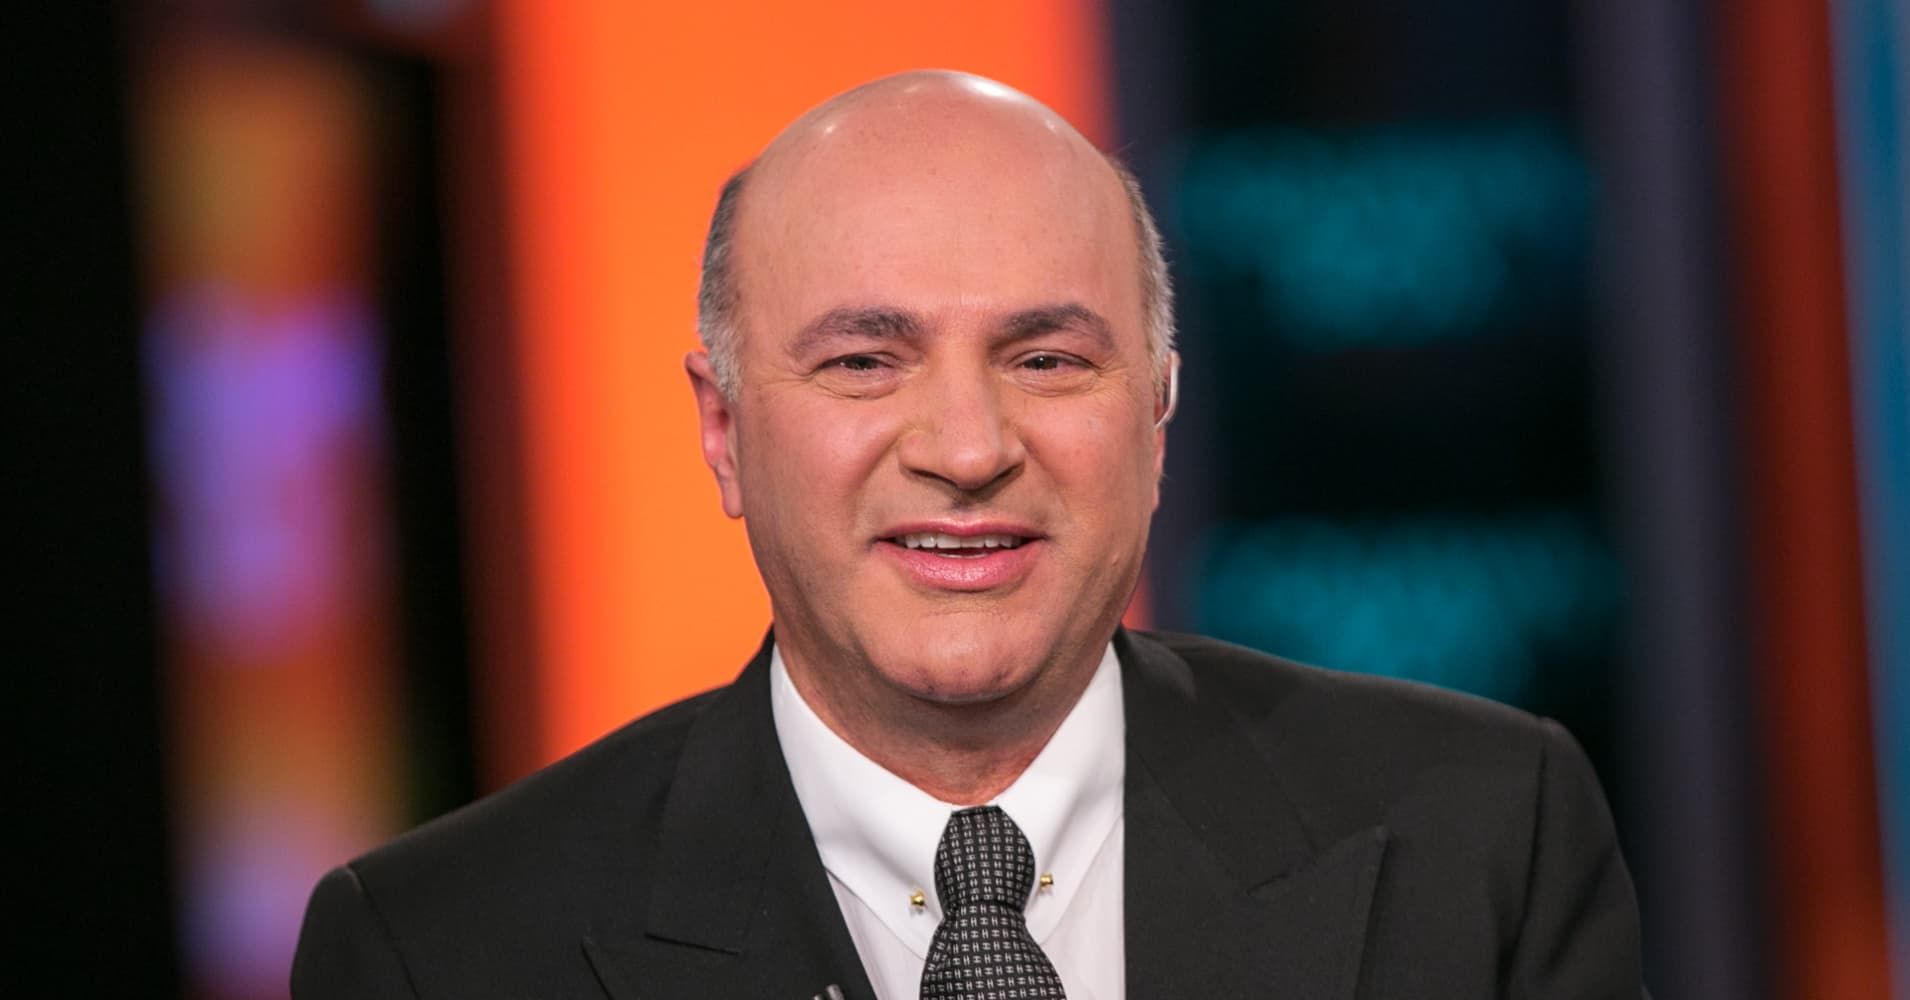 Kevin O'Leary: Don't make this home-buying mistake, even when mortgage rates are low